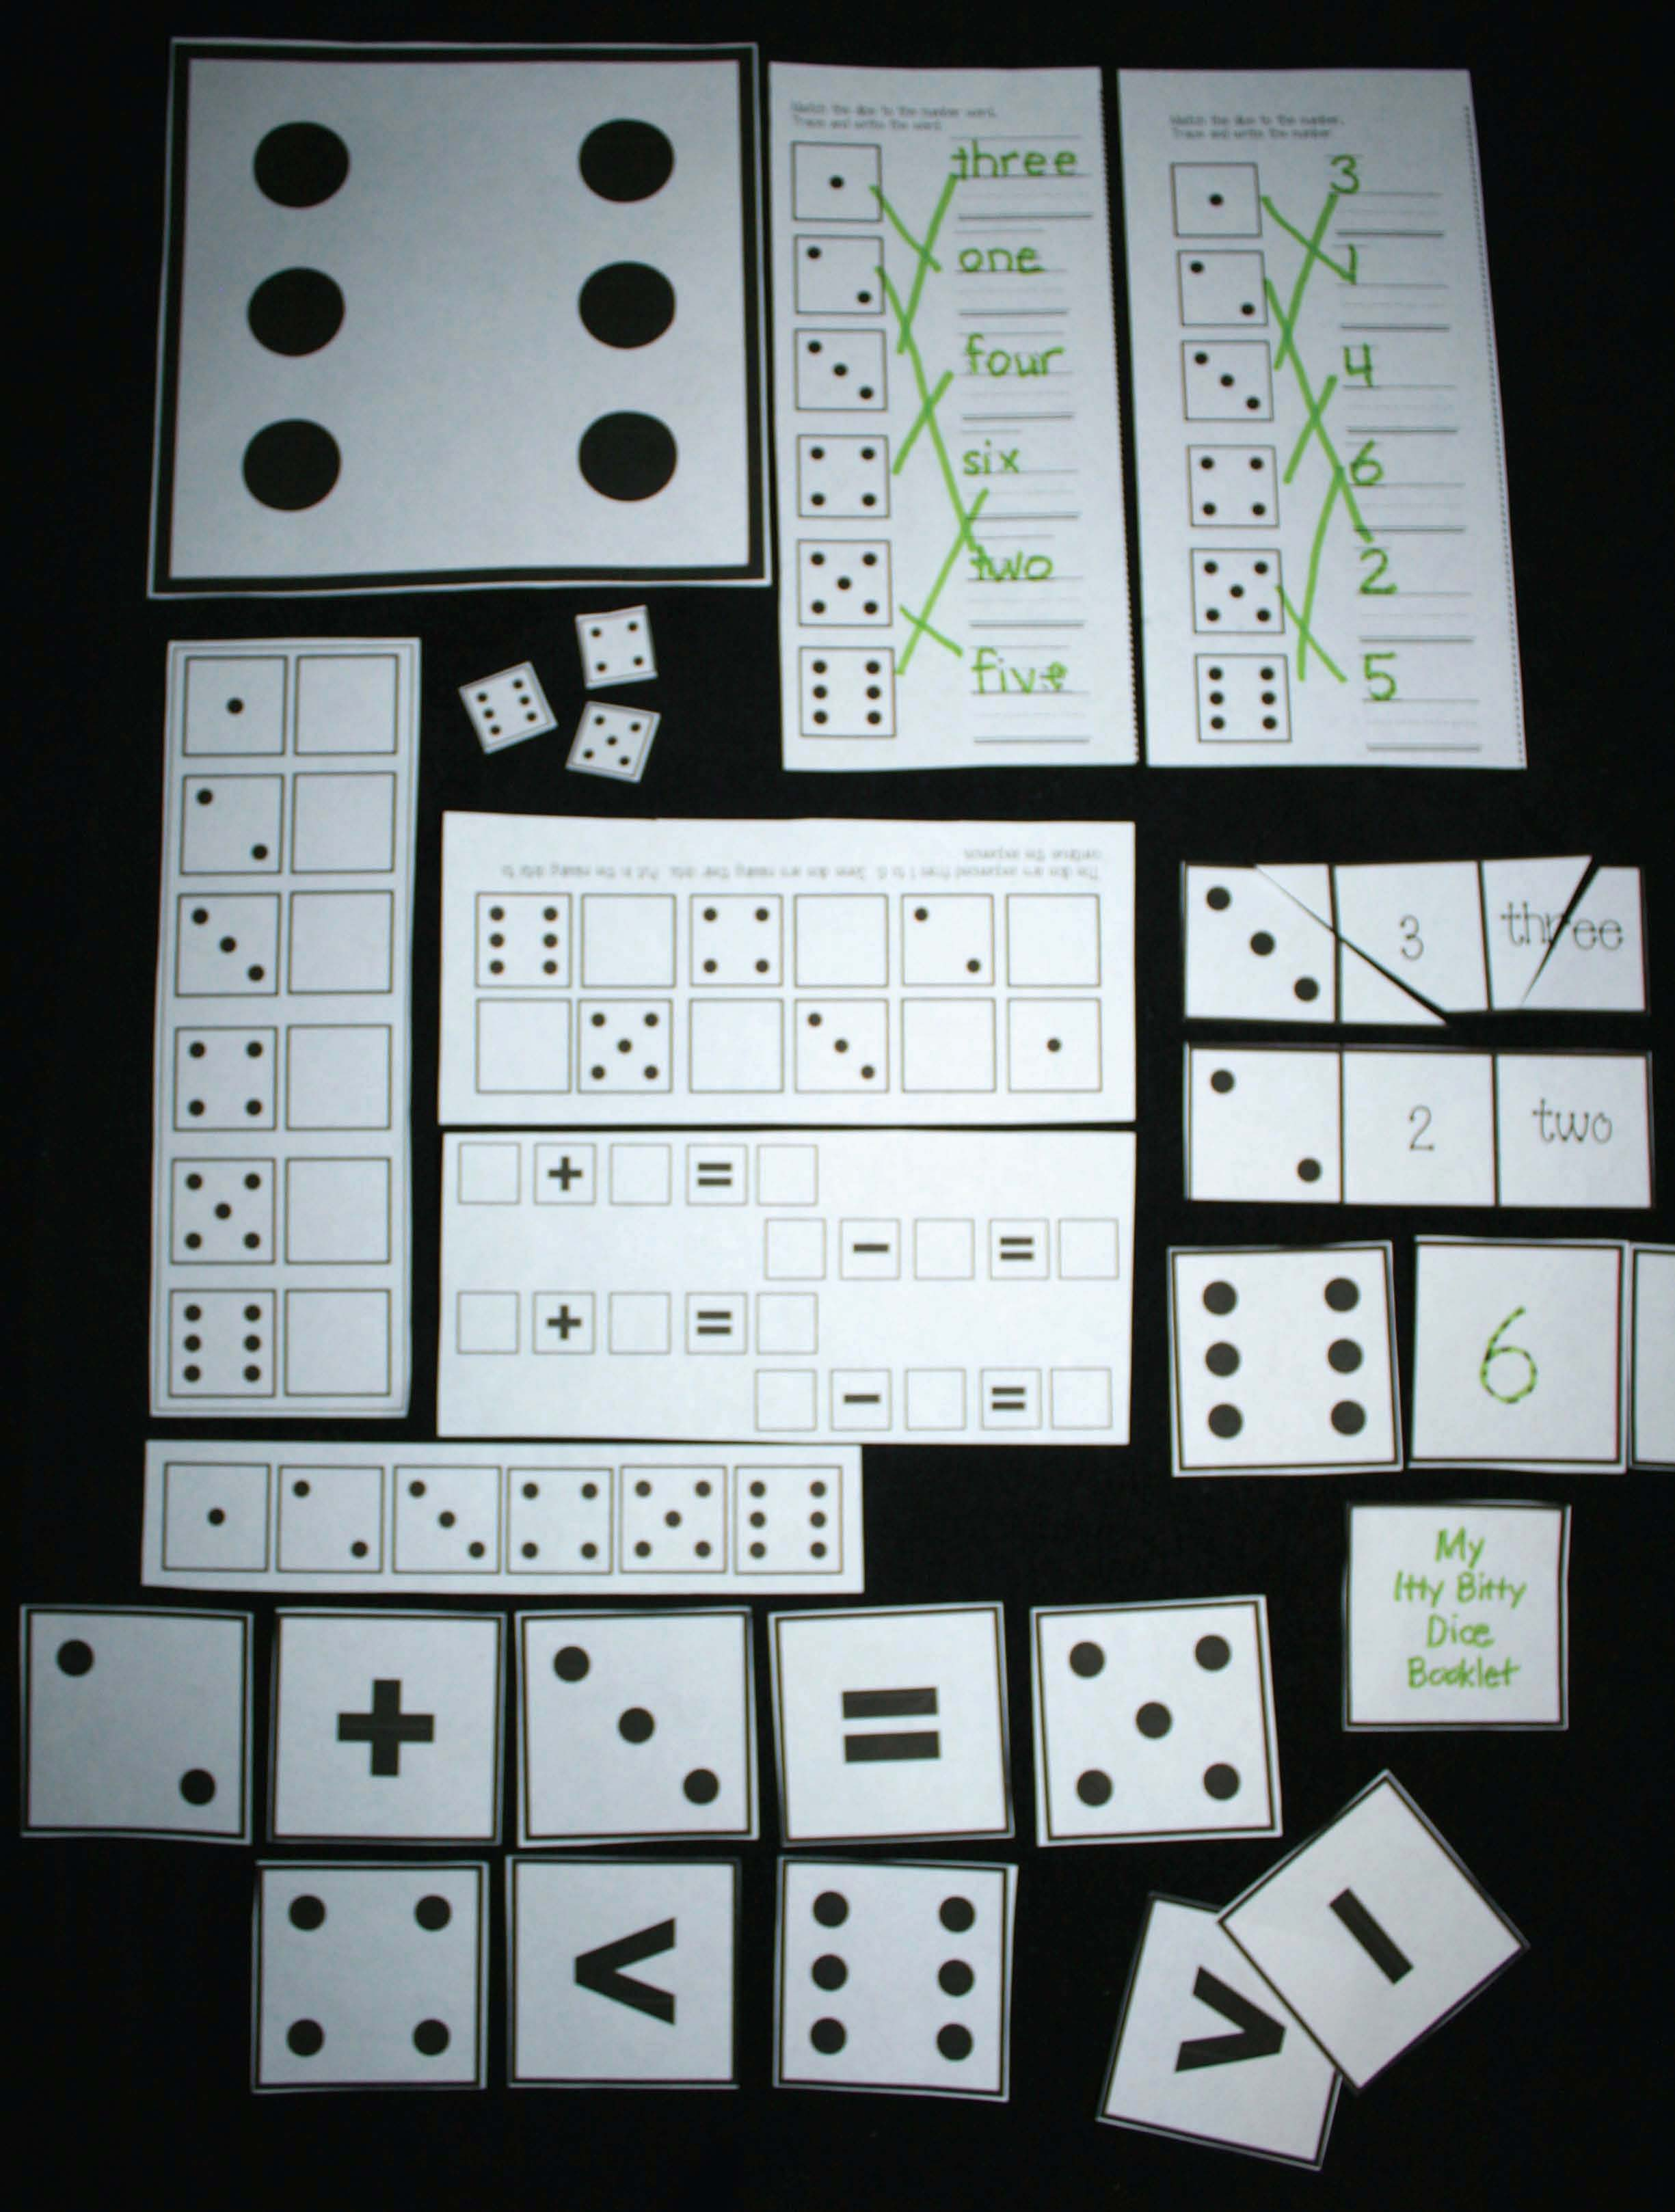 dice games, dice activities, math games, math games with dice, math centers, math activities, math magic tricks, math tips, magic tricks, number assessments, dice templates, dice cards, dice patterns, dice flashcards,